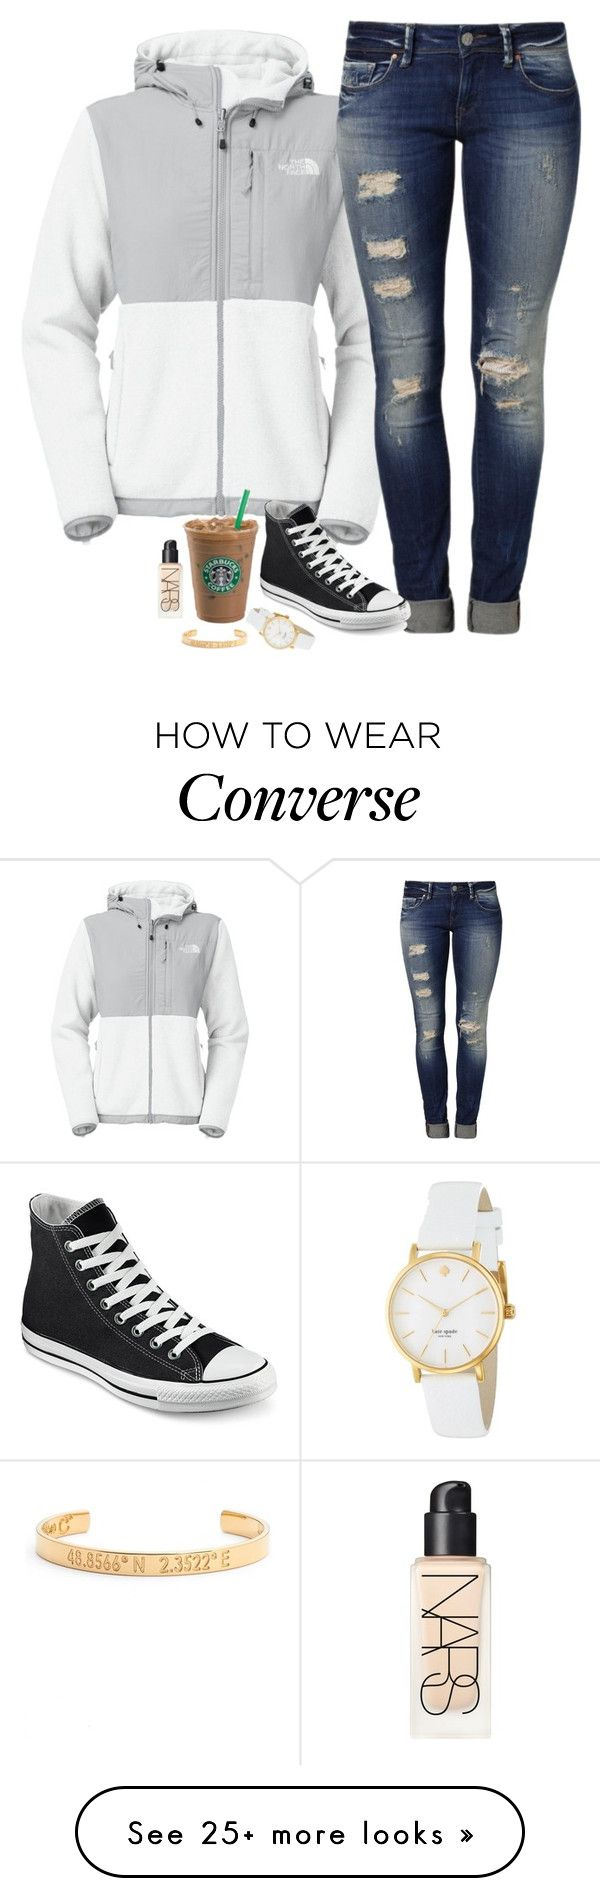 """Untitled #813"" by mads-thompson on Polyvore featuring moda, The North Face, Mavi, Converse, Kate Spade, NARS Cosmetics i Coordinates Collection"